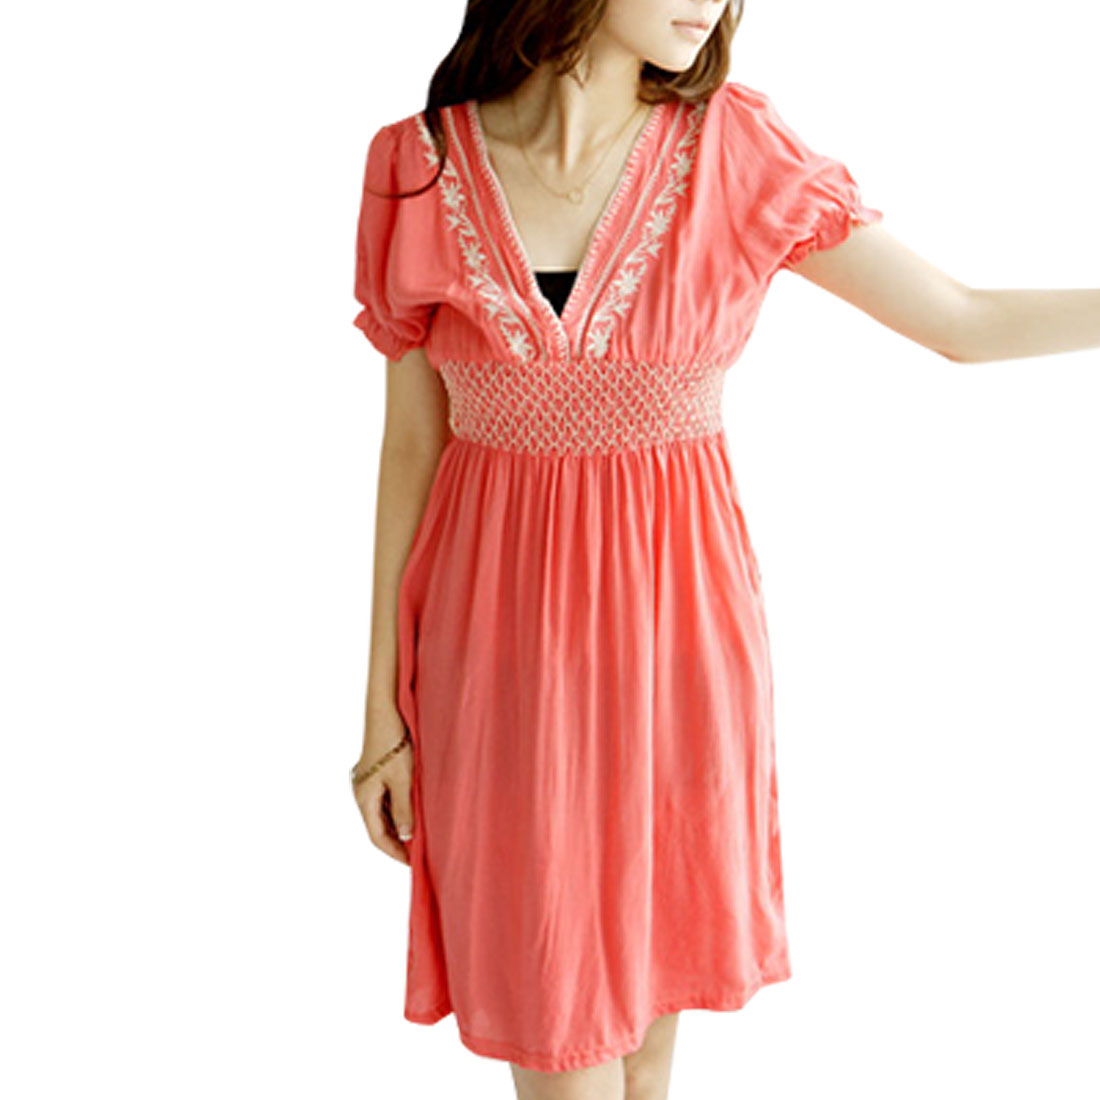 Ladies Watermelon Red Smocked Waist Short Sleeves Dress XS